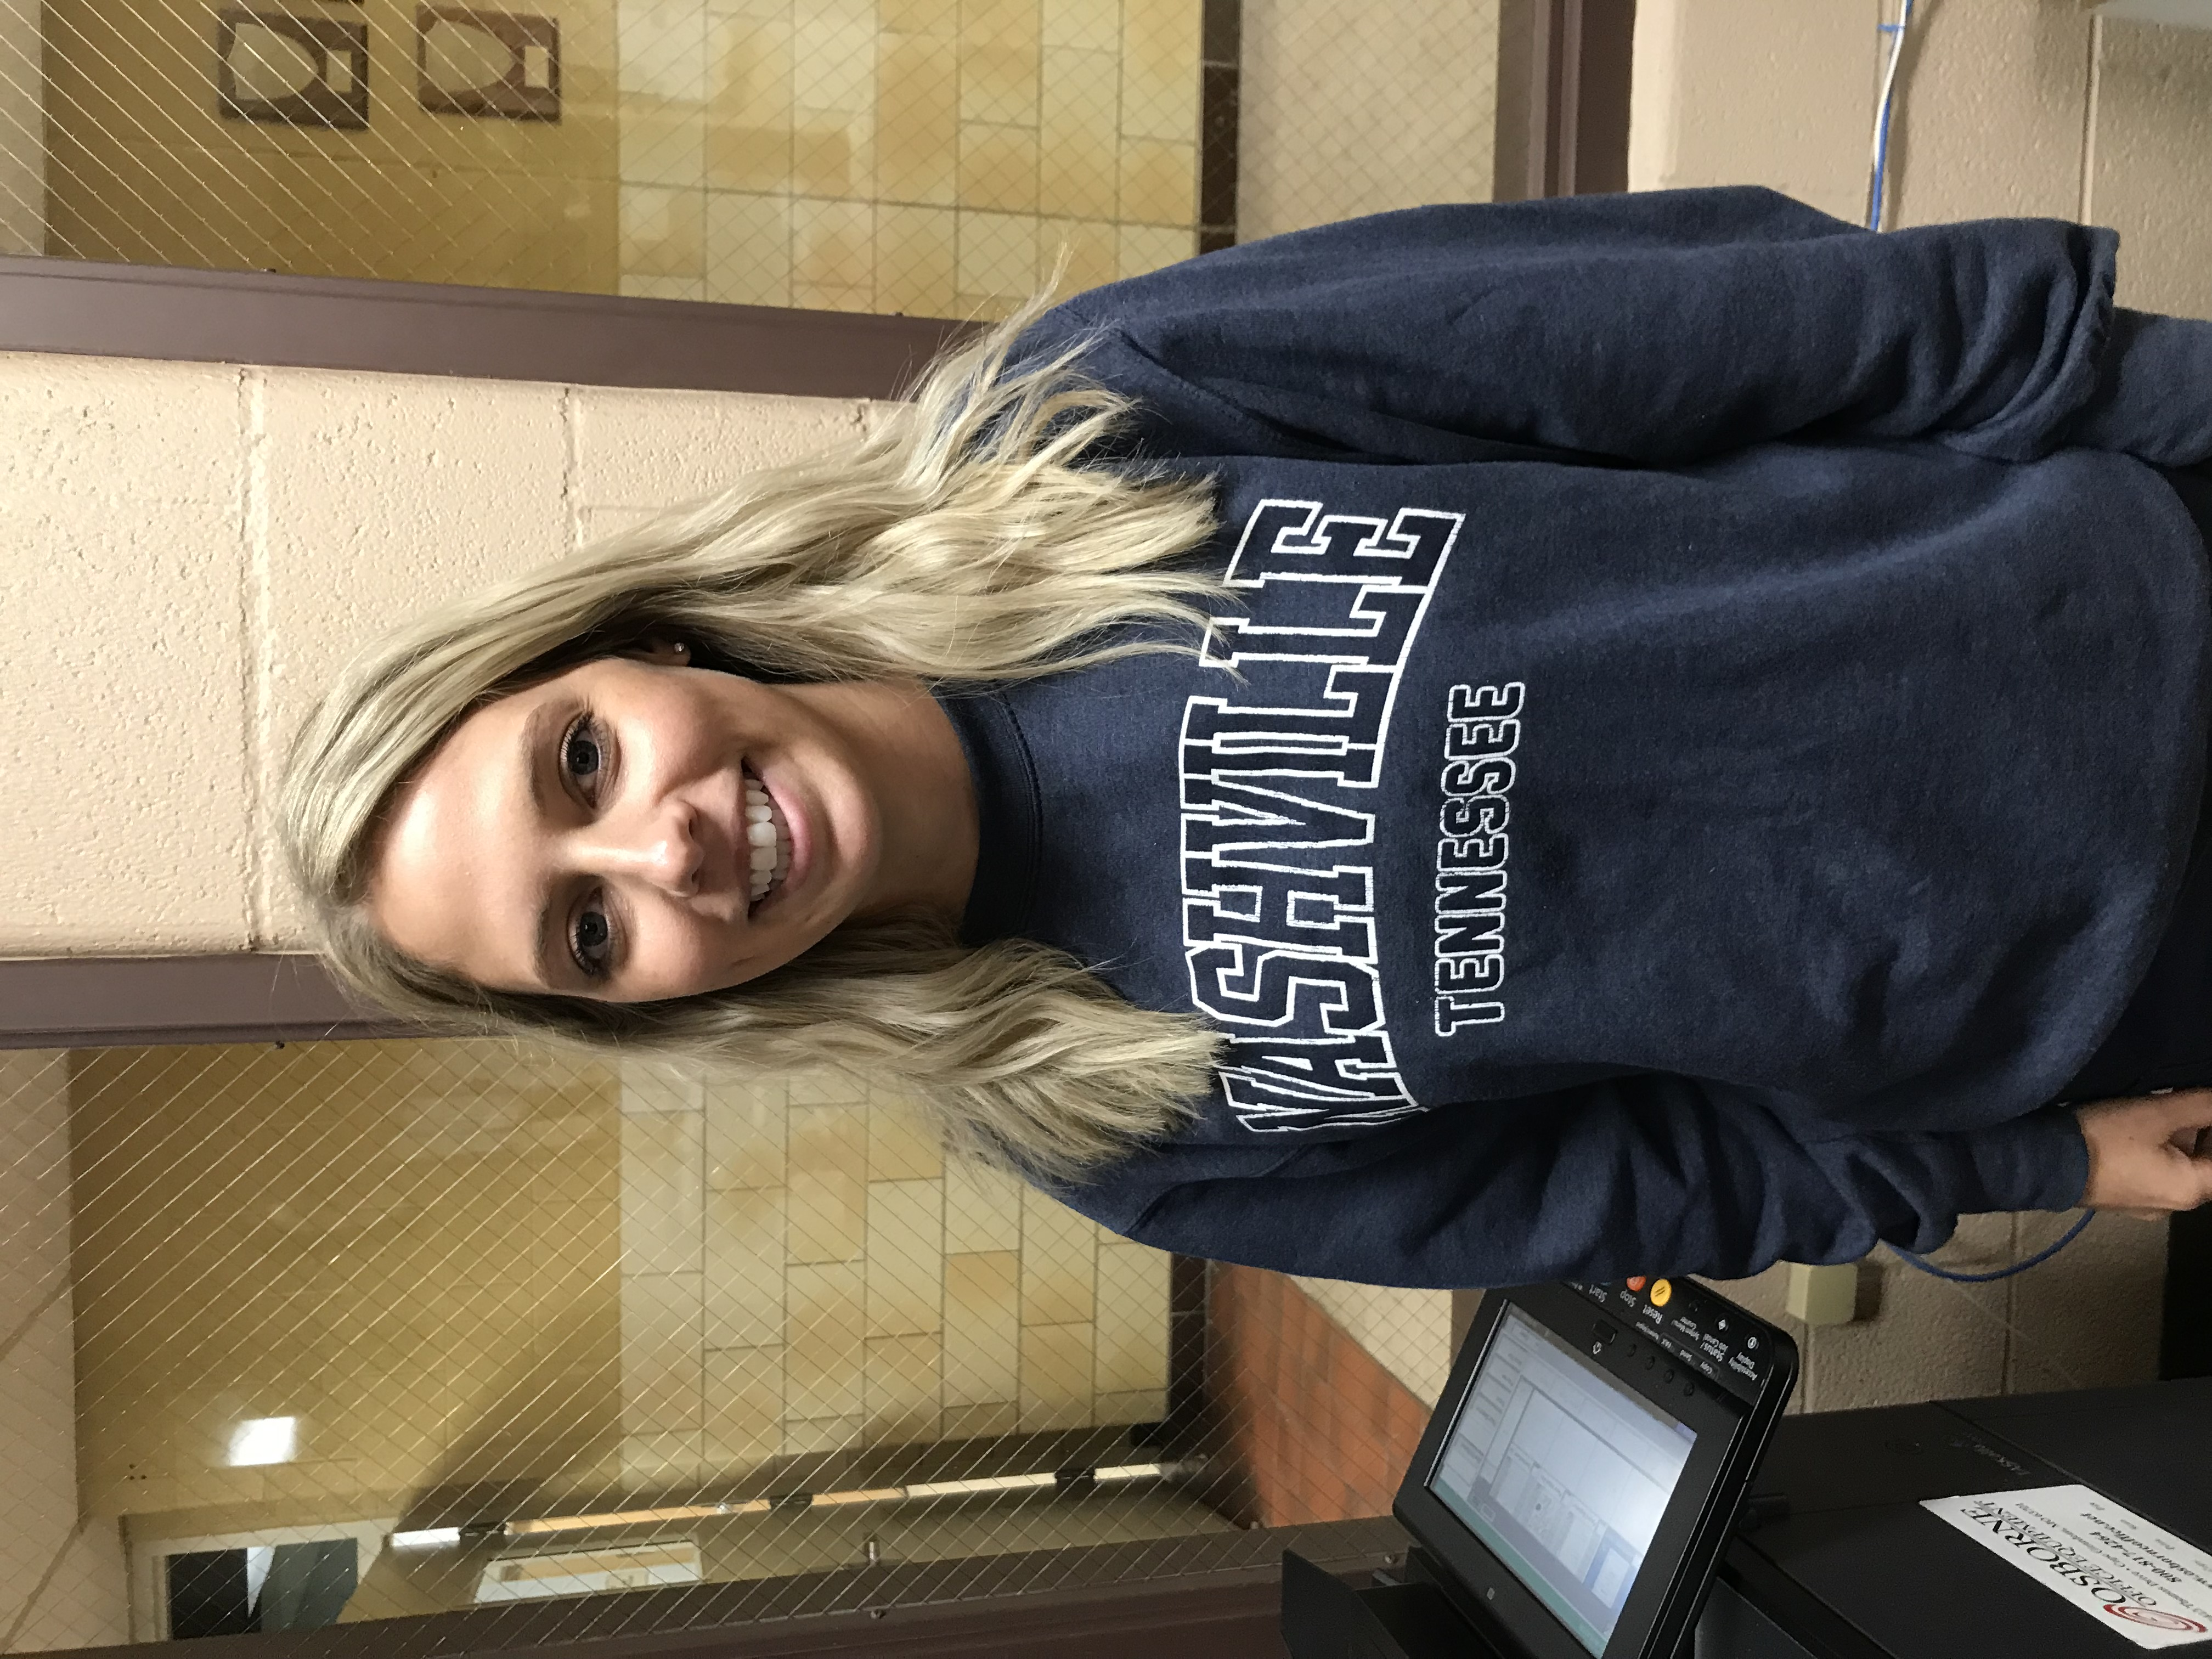 smiling woman with blonde hair and a navy blue sweatshirt